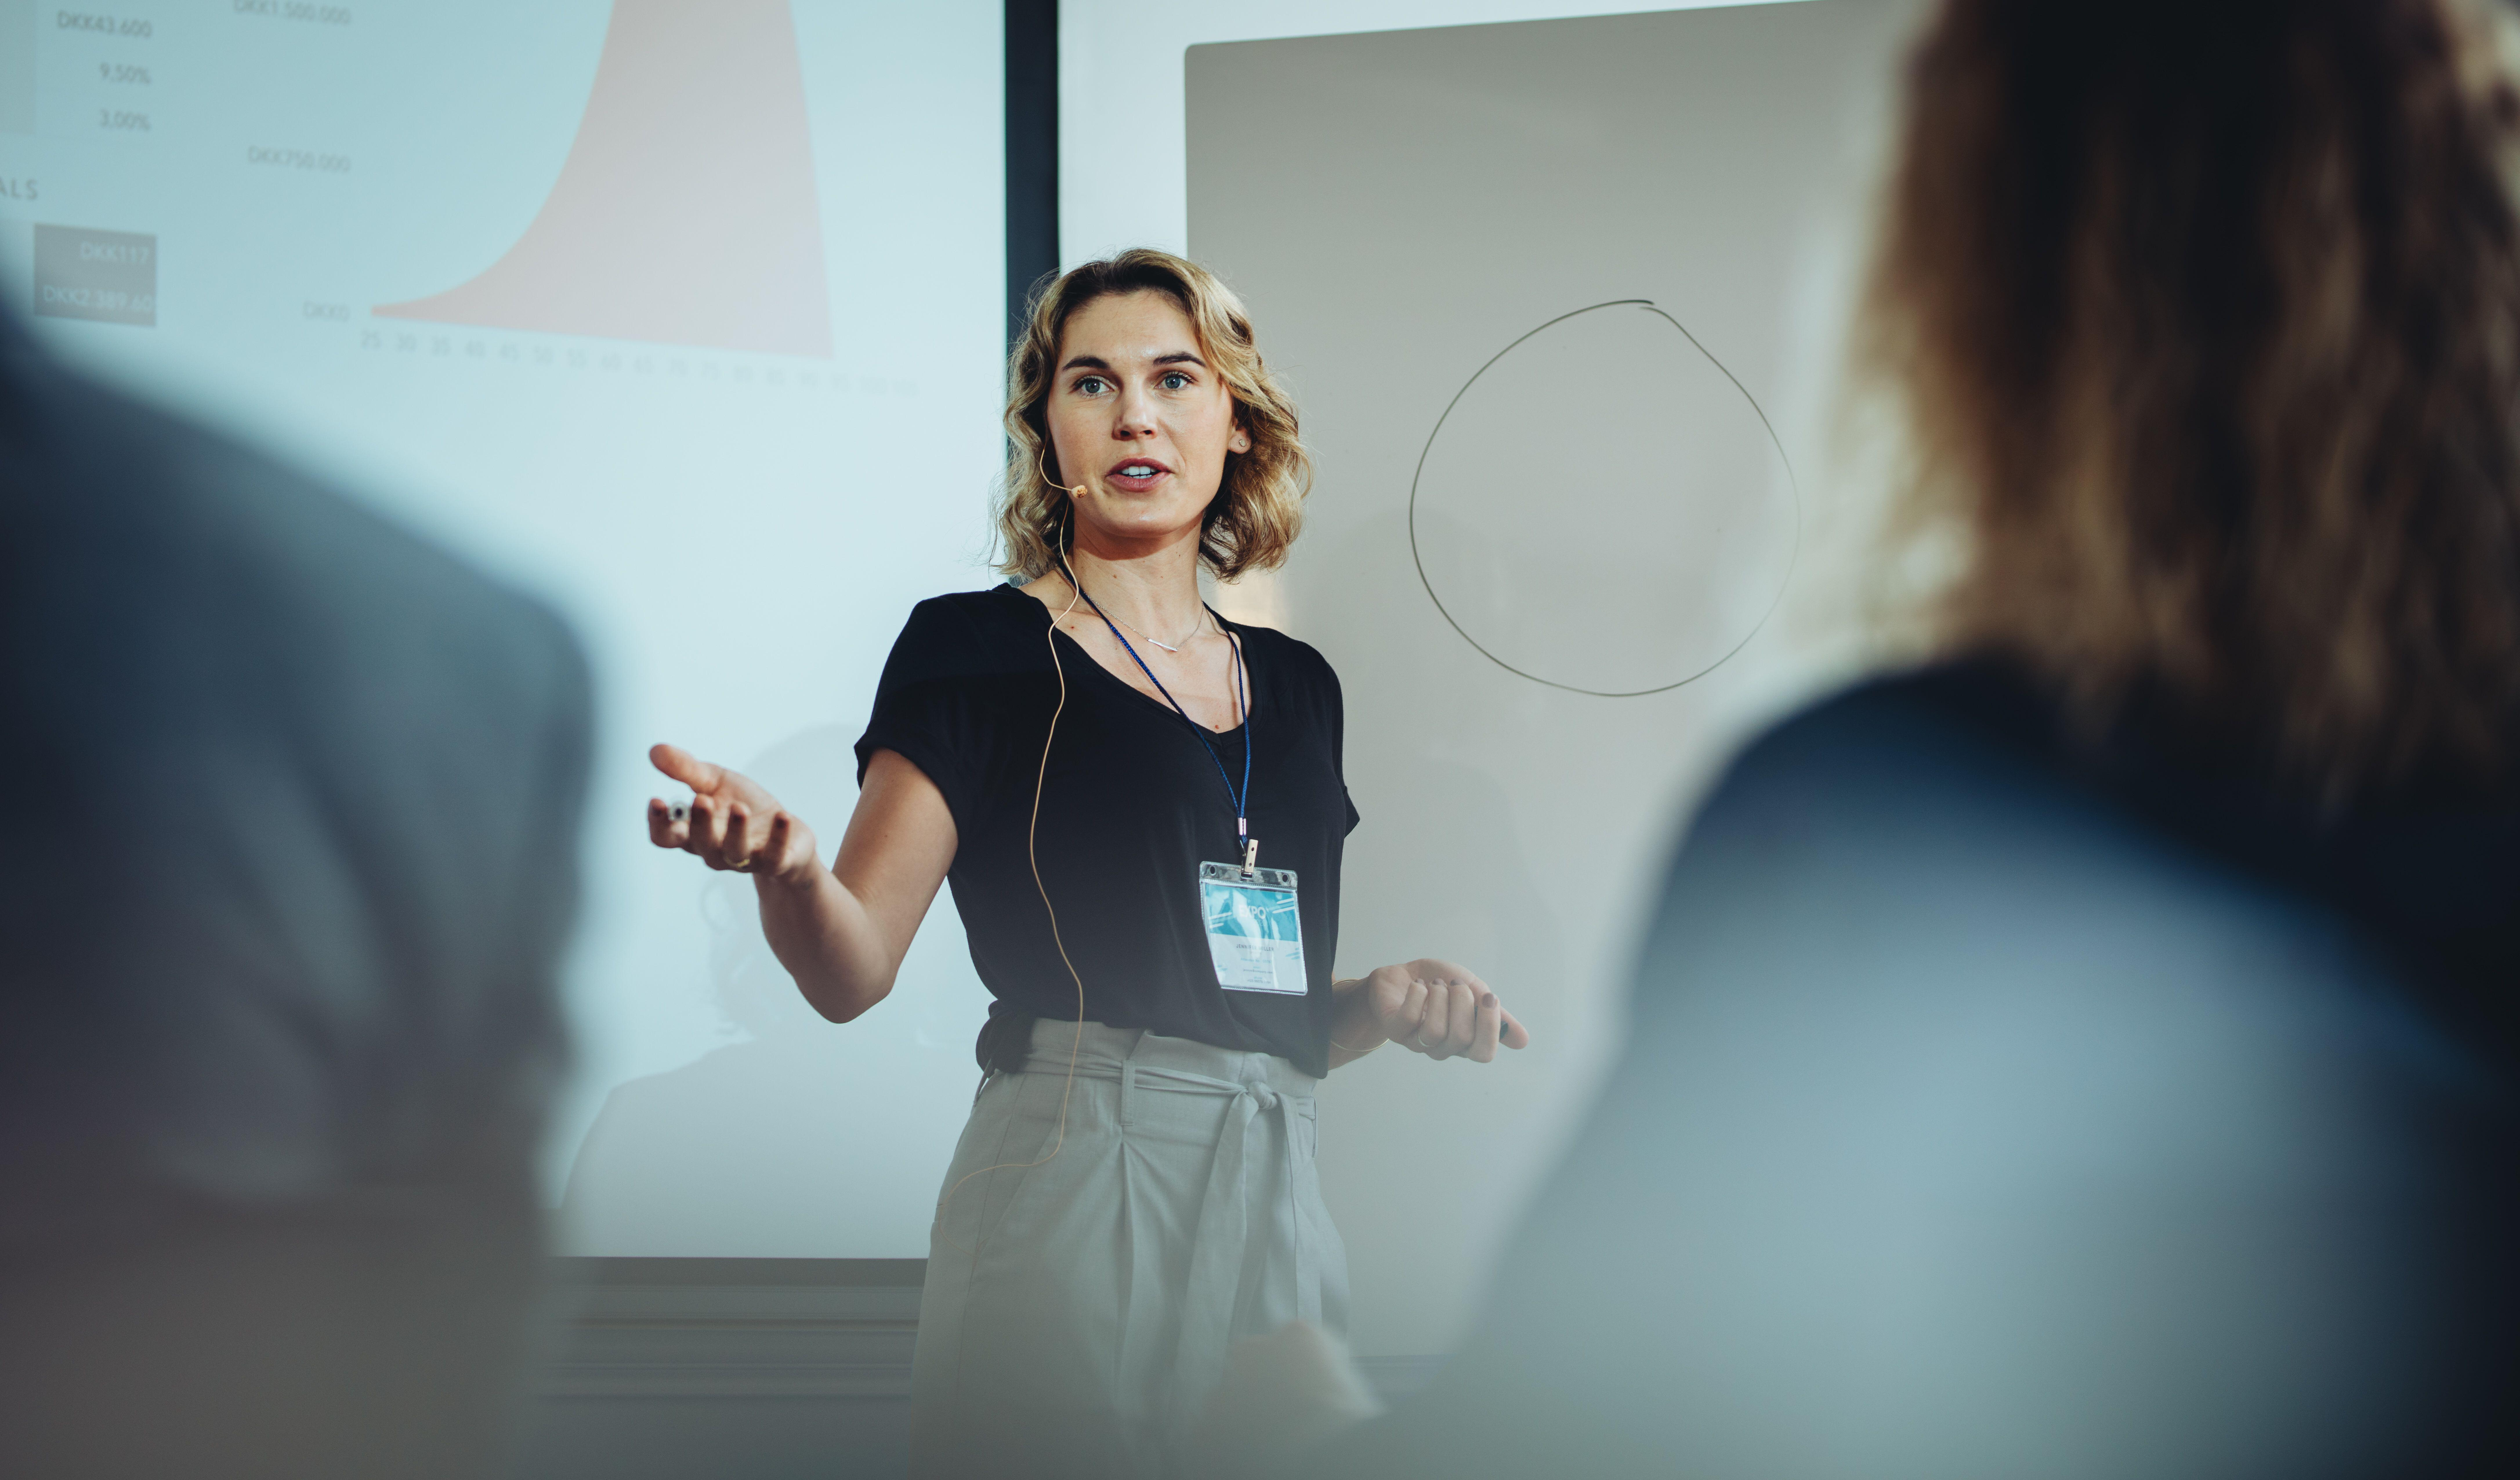 Woman presenting her idea to colleagues in meeting. Businesswoman public speaking in a conference meeting.